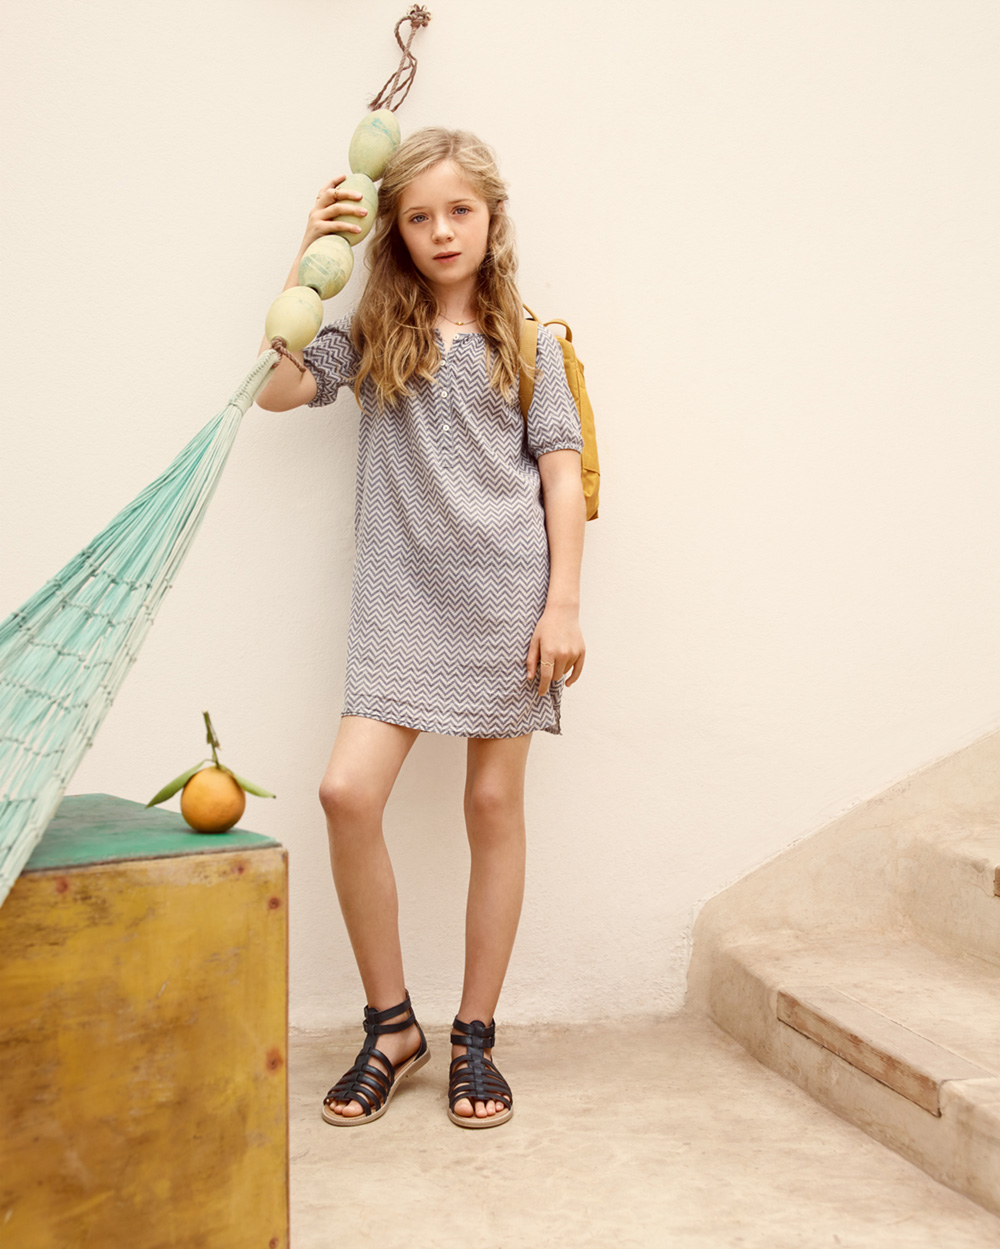 Goertz-Kids-Catalogue-AW-2015-1.jpg